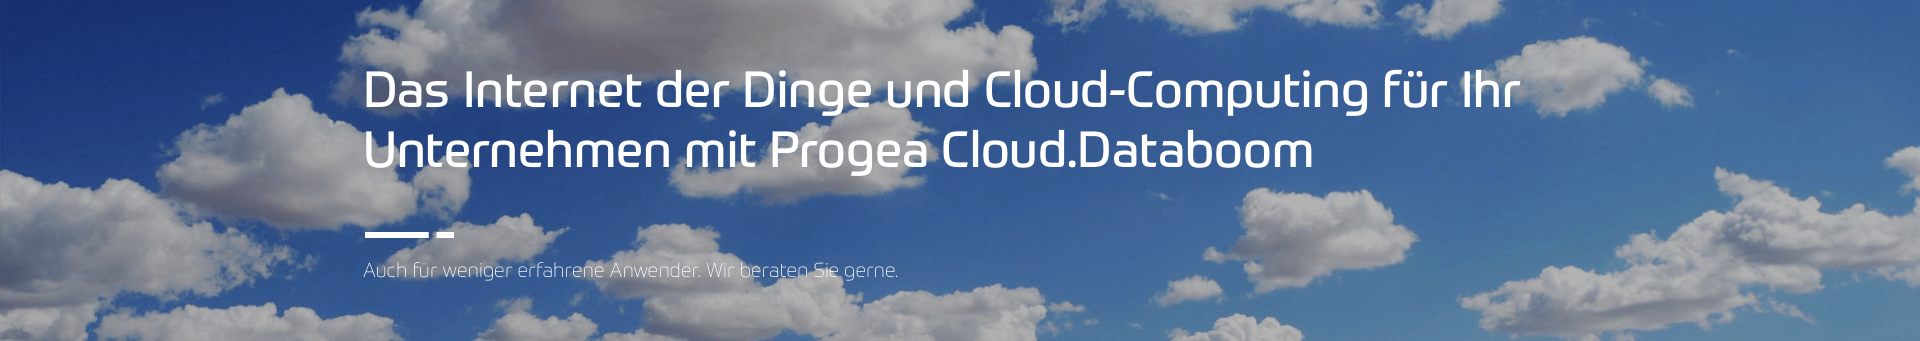 Progea Cloud computing